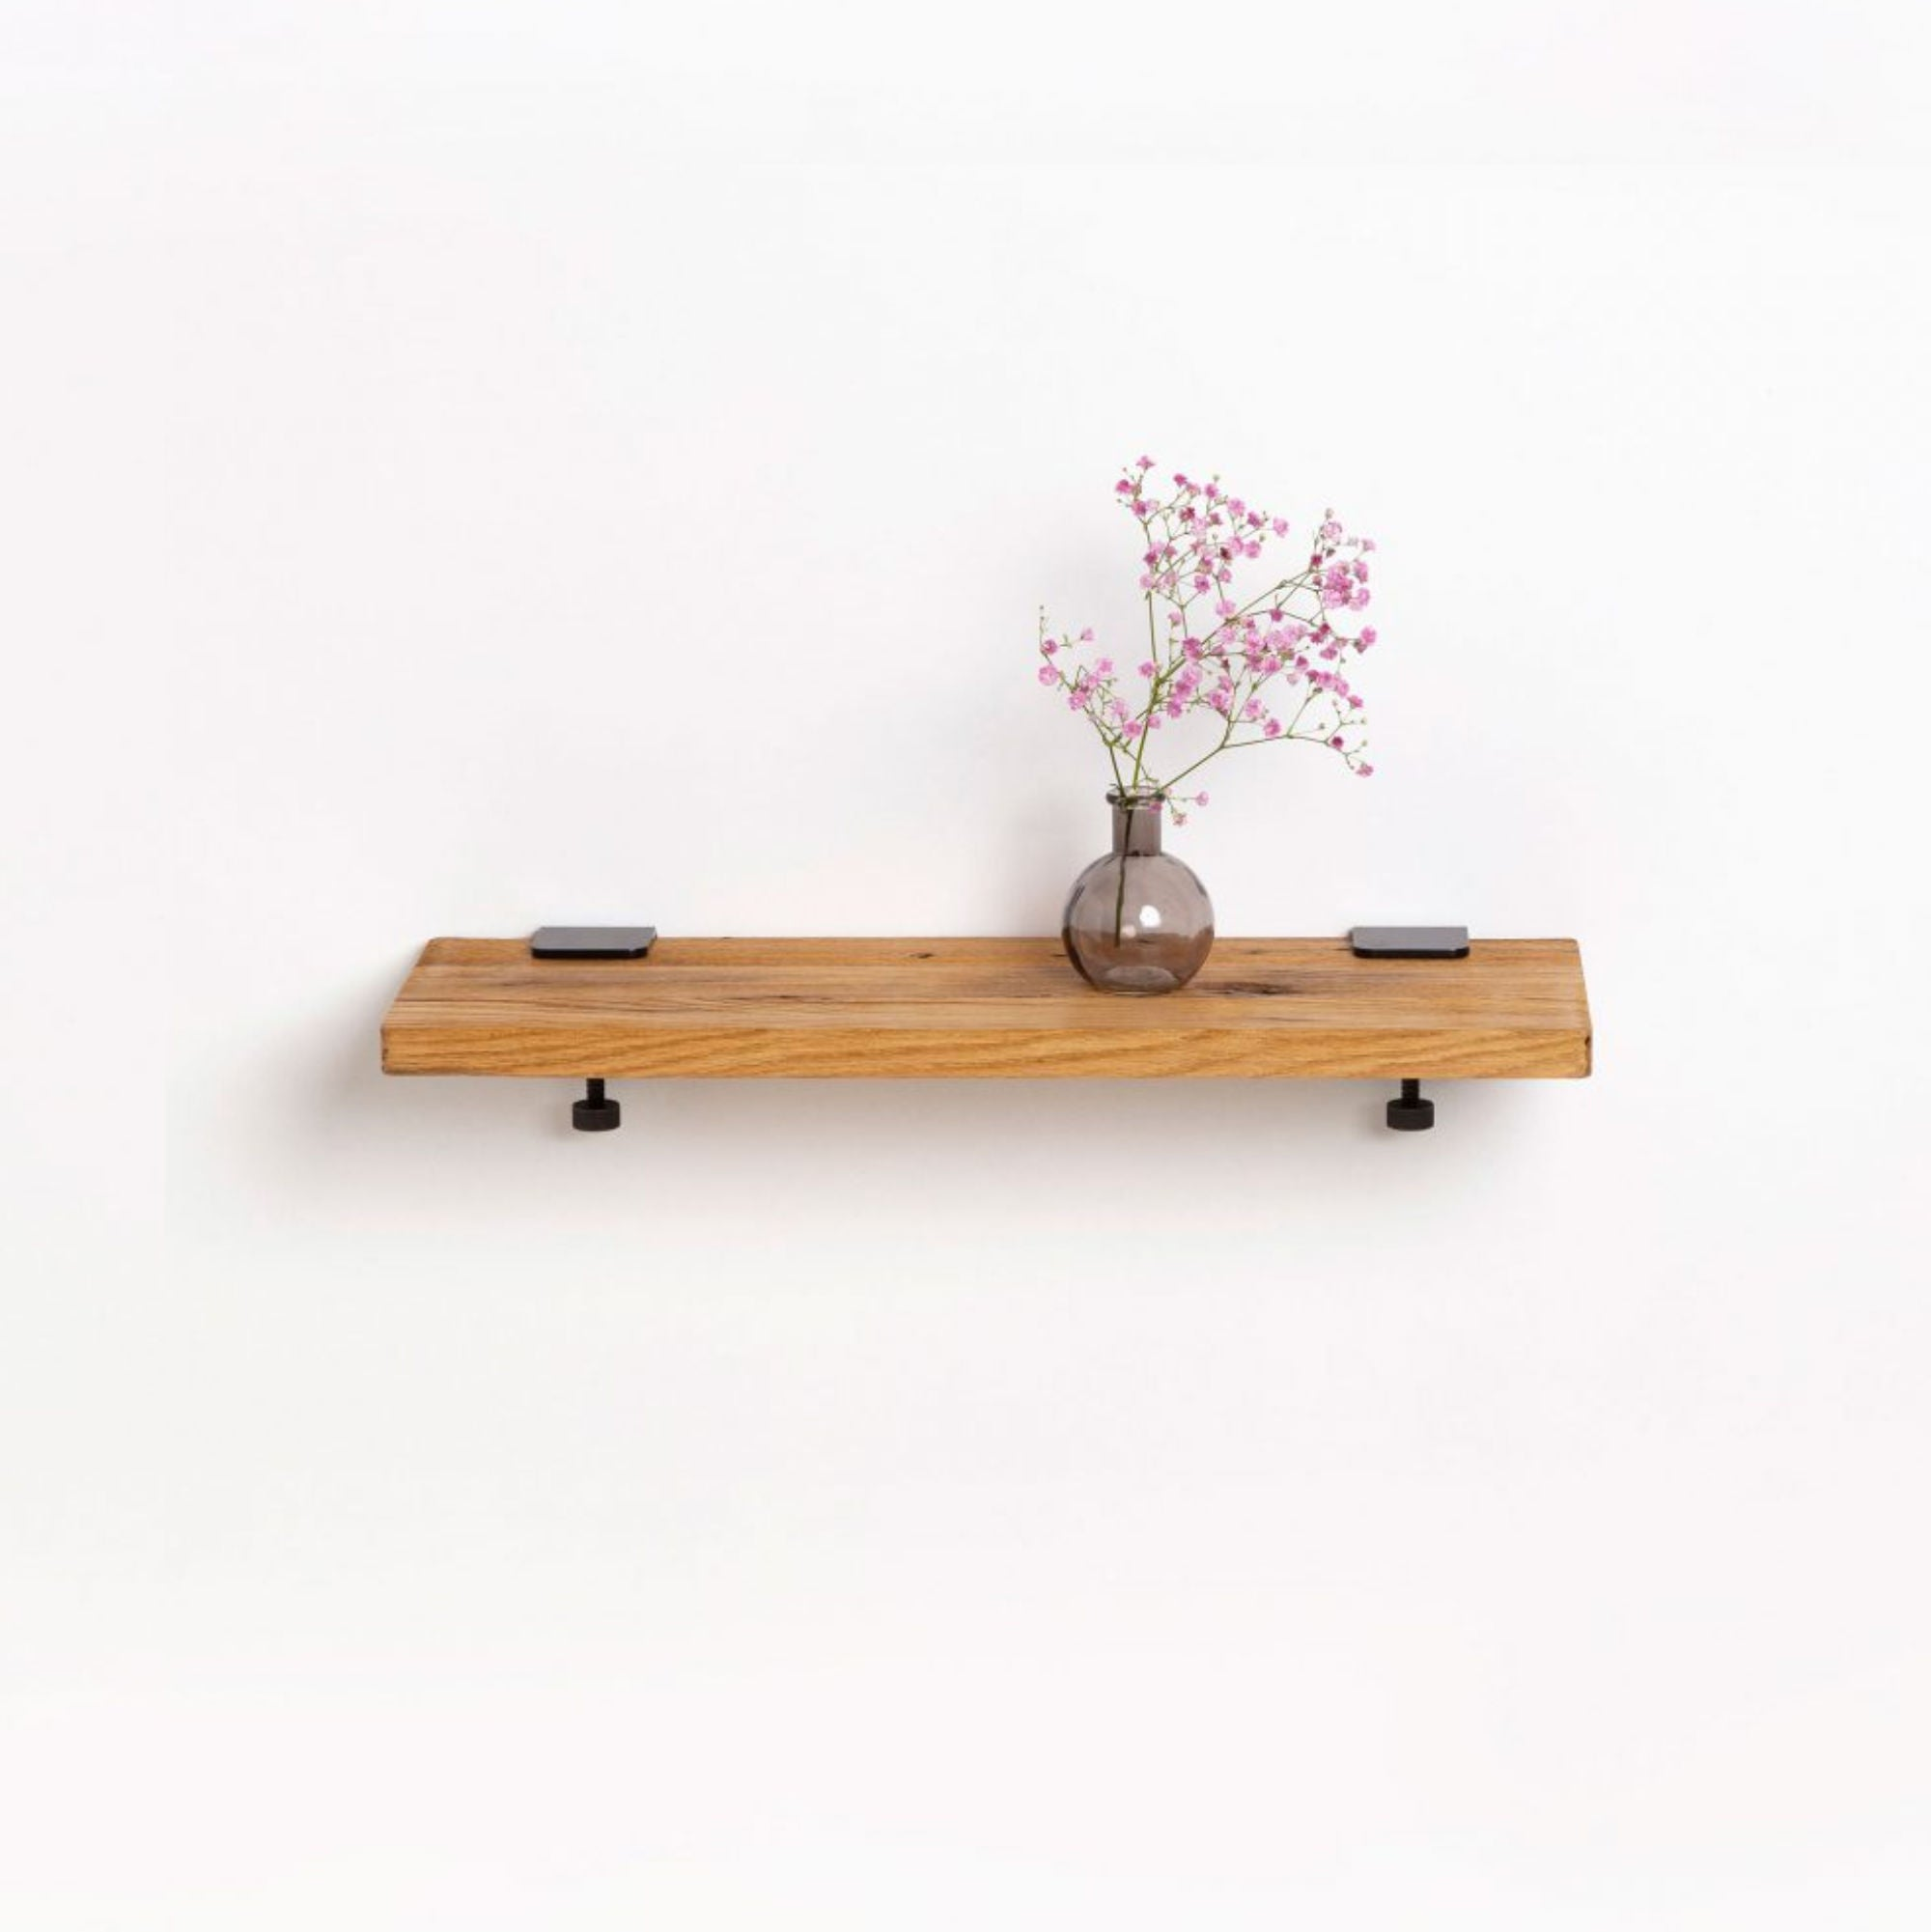 Tiptop Reclaimed wood shelf, 60 * 20cm